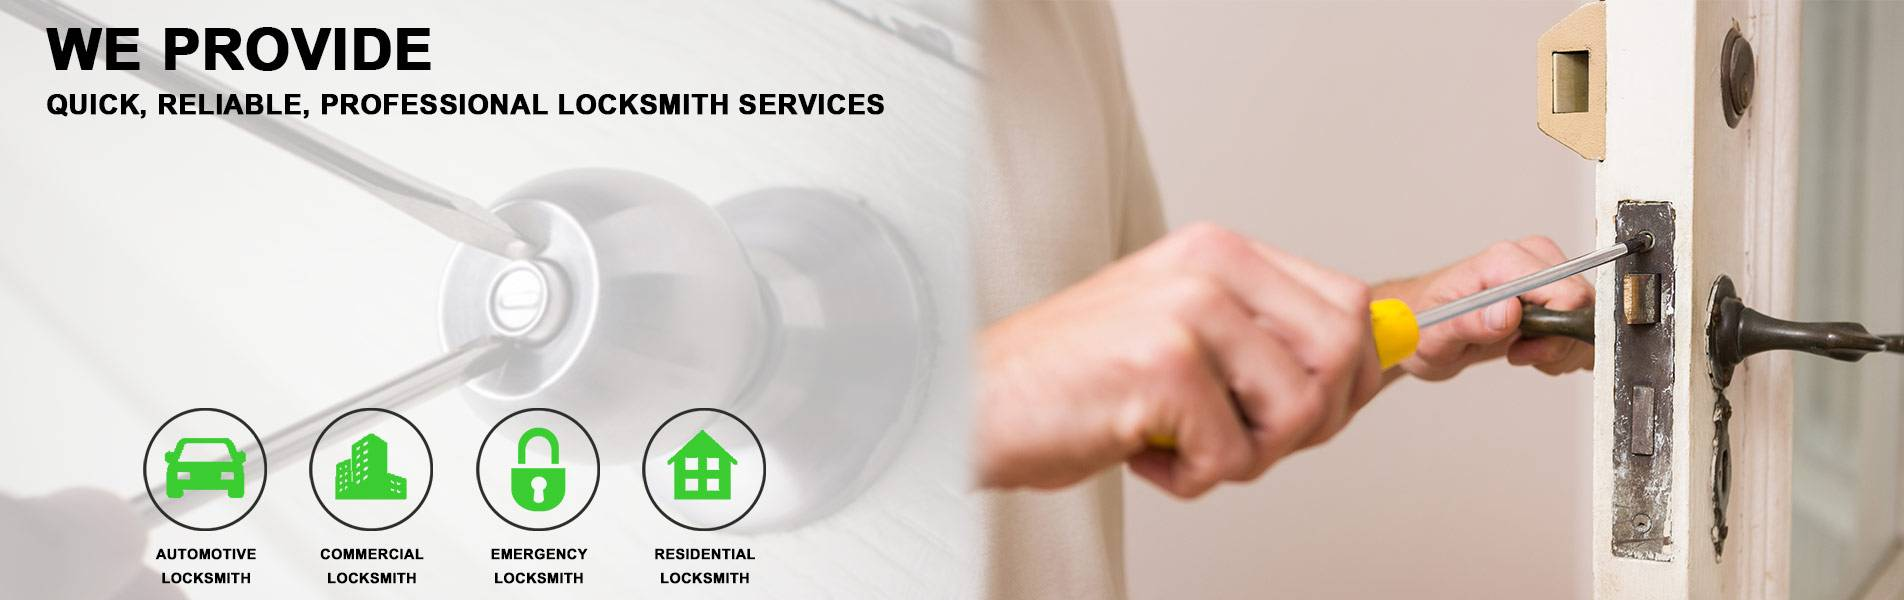 Expert Locksmith Services Kansas City, MO 816-826-3122